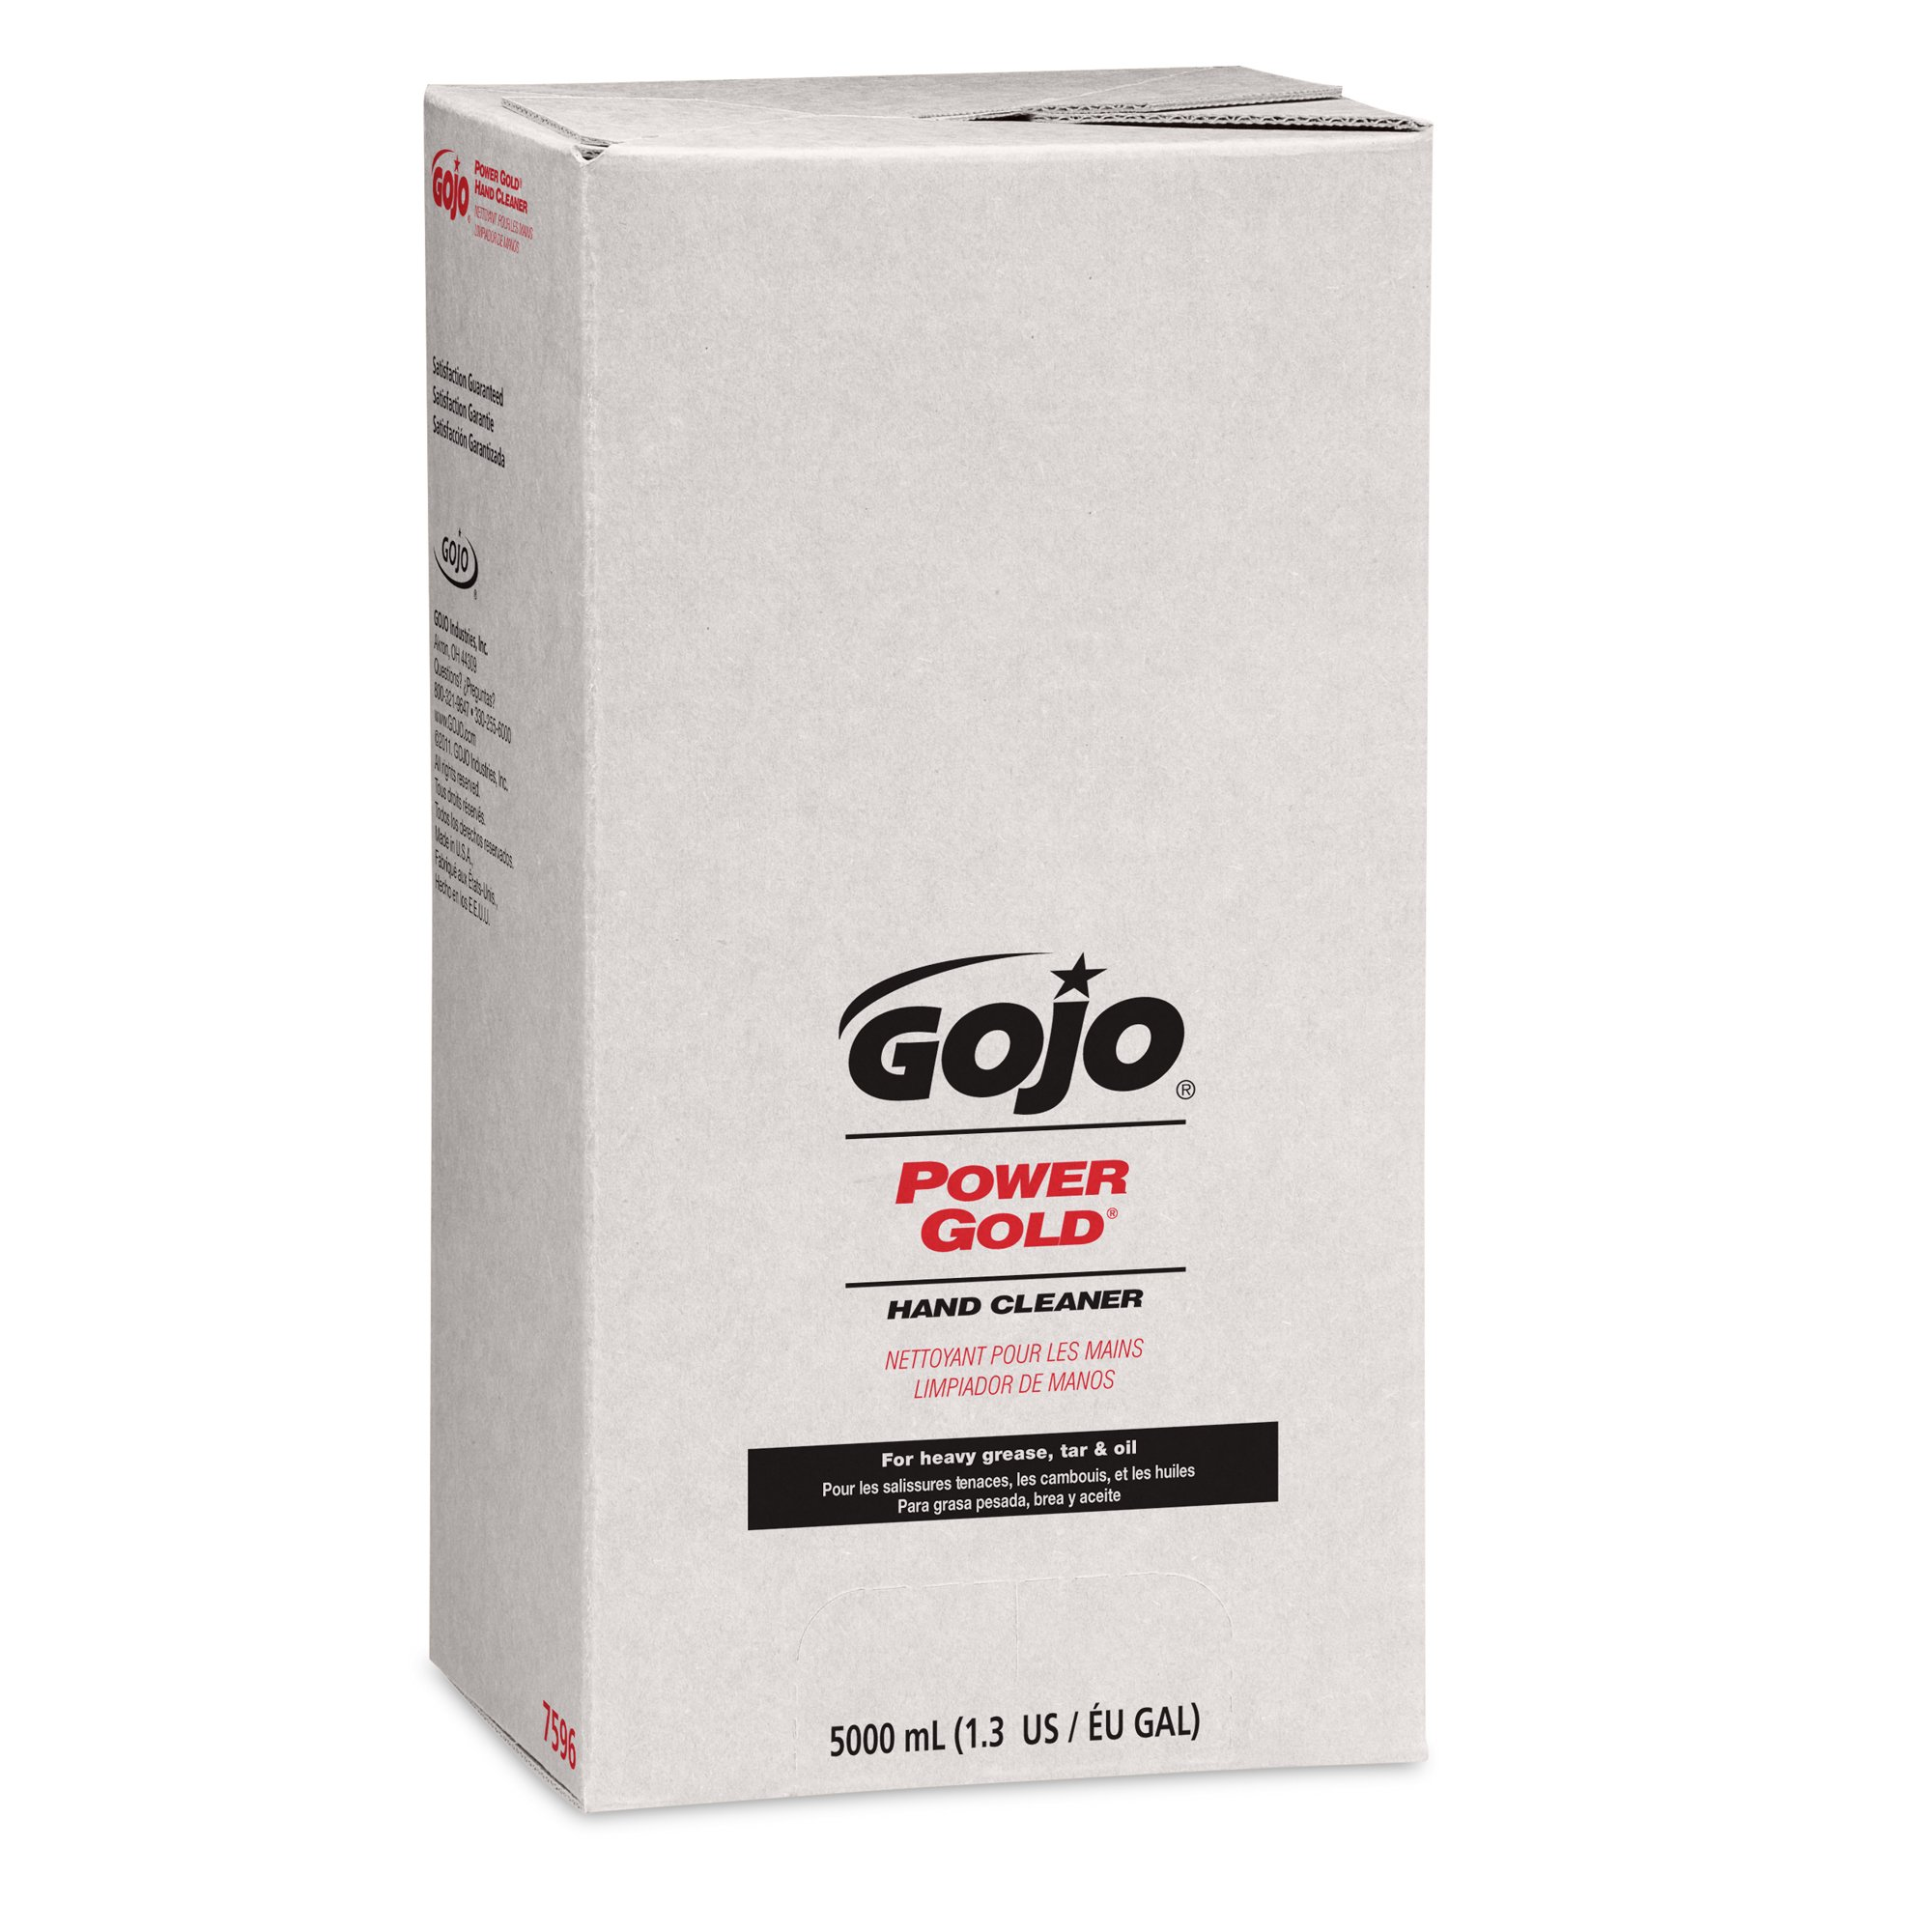 GOJO 7596 POWER GOLD Hand Cleaner, 5000mL, Citrus Scent, Green, Compatible with Dispenser #7500-01 (Case of 2)